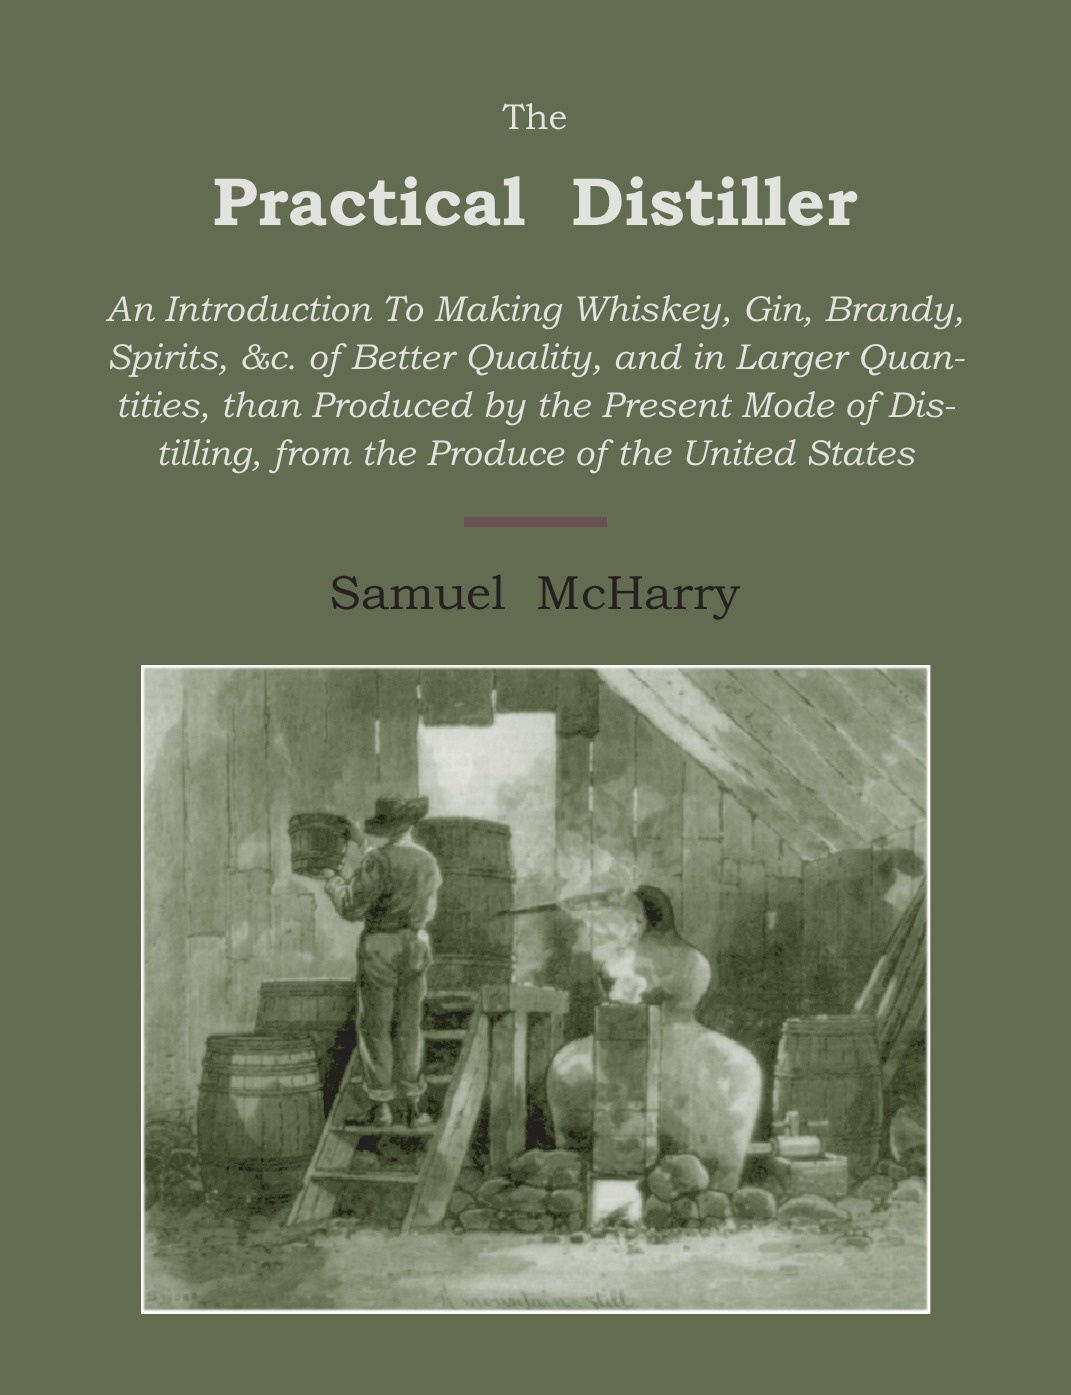 Samuel McHarry The Practical Distiller. An Introduction to Making Whiskey, Gin, Brandy, Spirits of Better Quality, and in Larger Quantities, Than Produced by